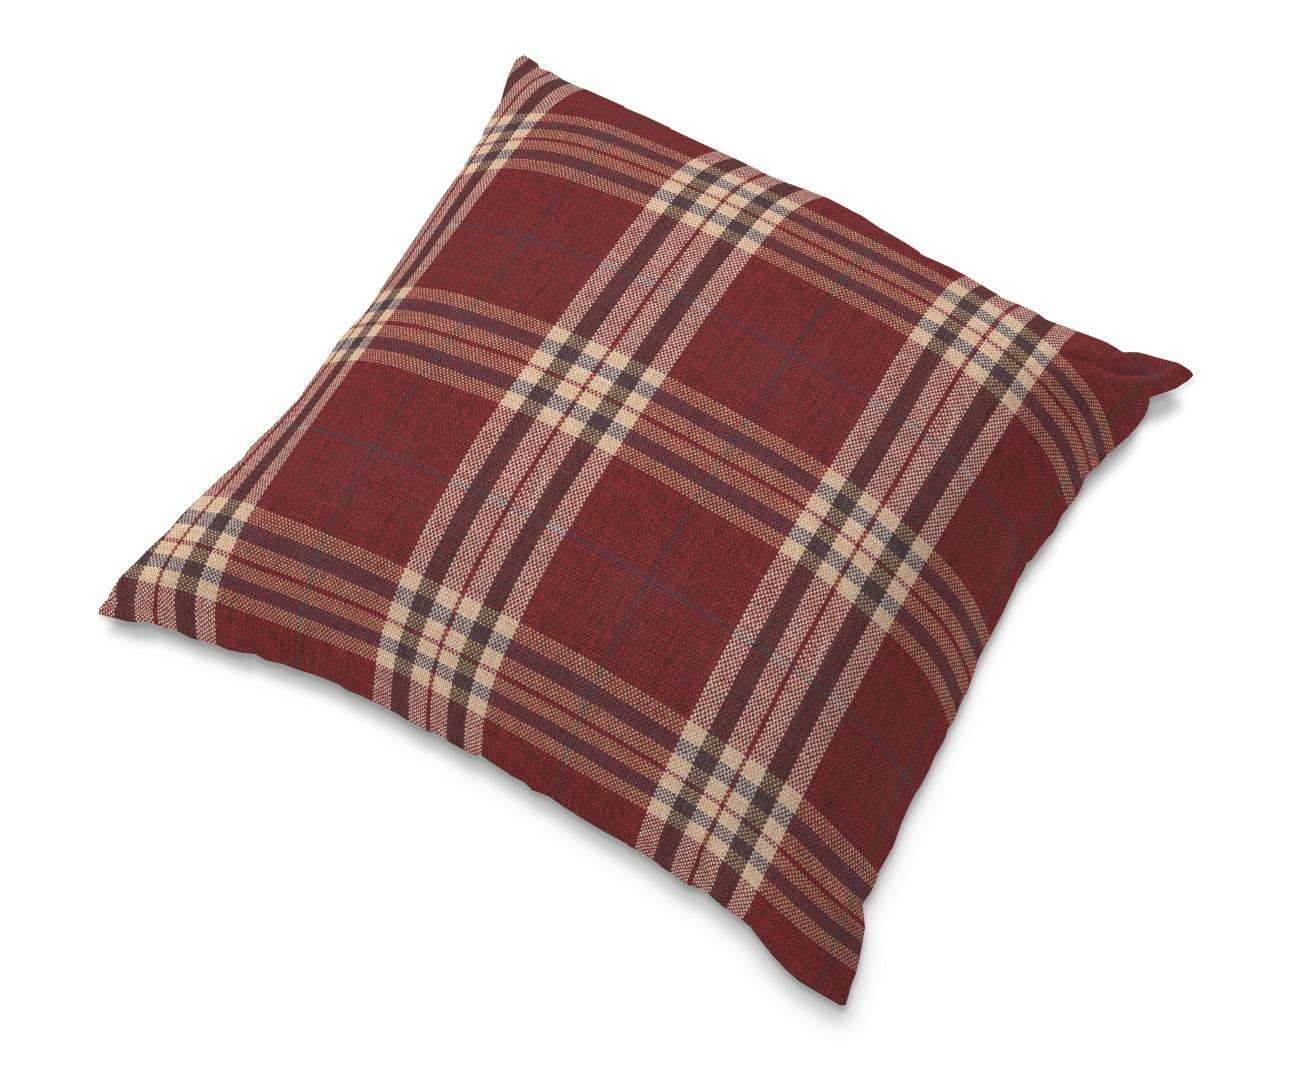 Tomelilla cushion cover 55 x 55 cm (22 x 22 inch) in collection Edinburgh, fabric: 115-73